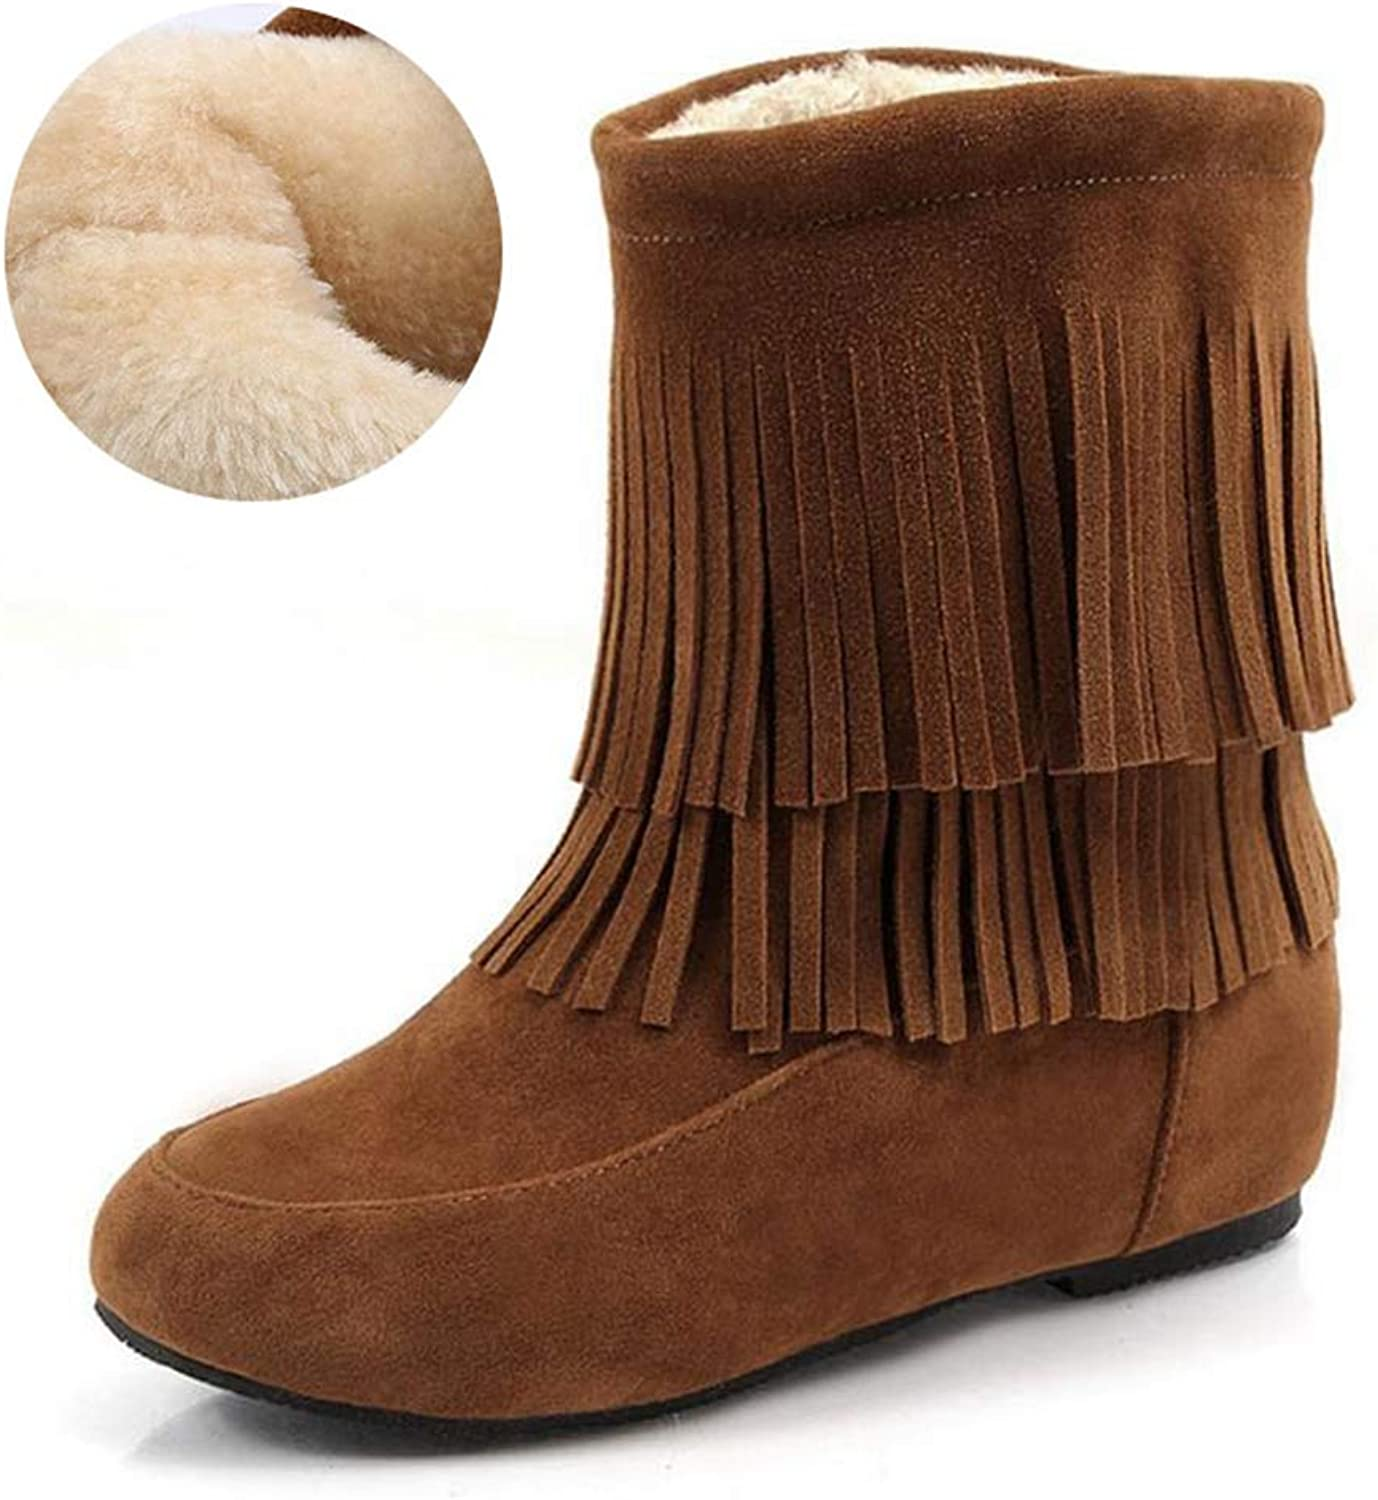 T-JULY Snow Boots for Women Winter Plush Flats Fringes Mid Calf Inside Fur Round Toe shoes Party shoes